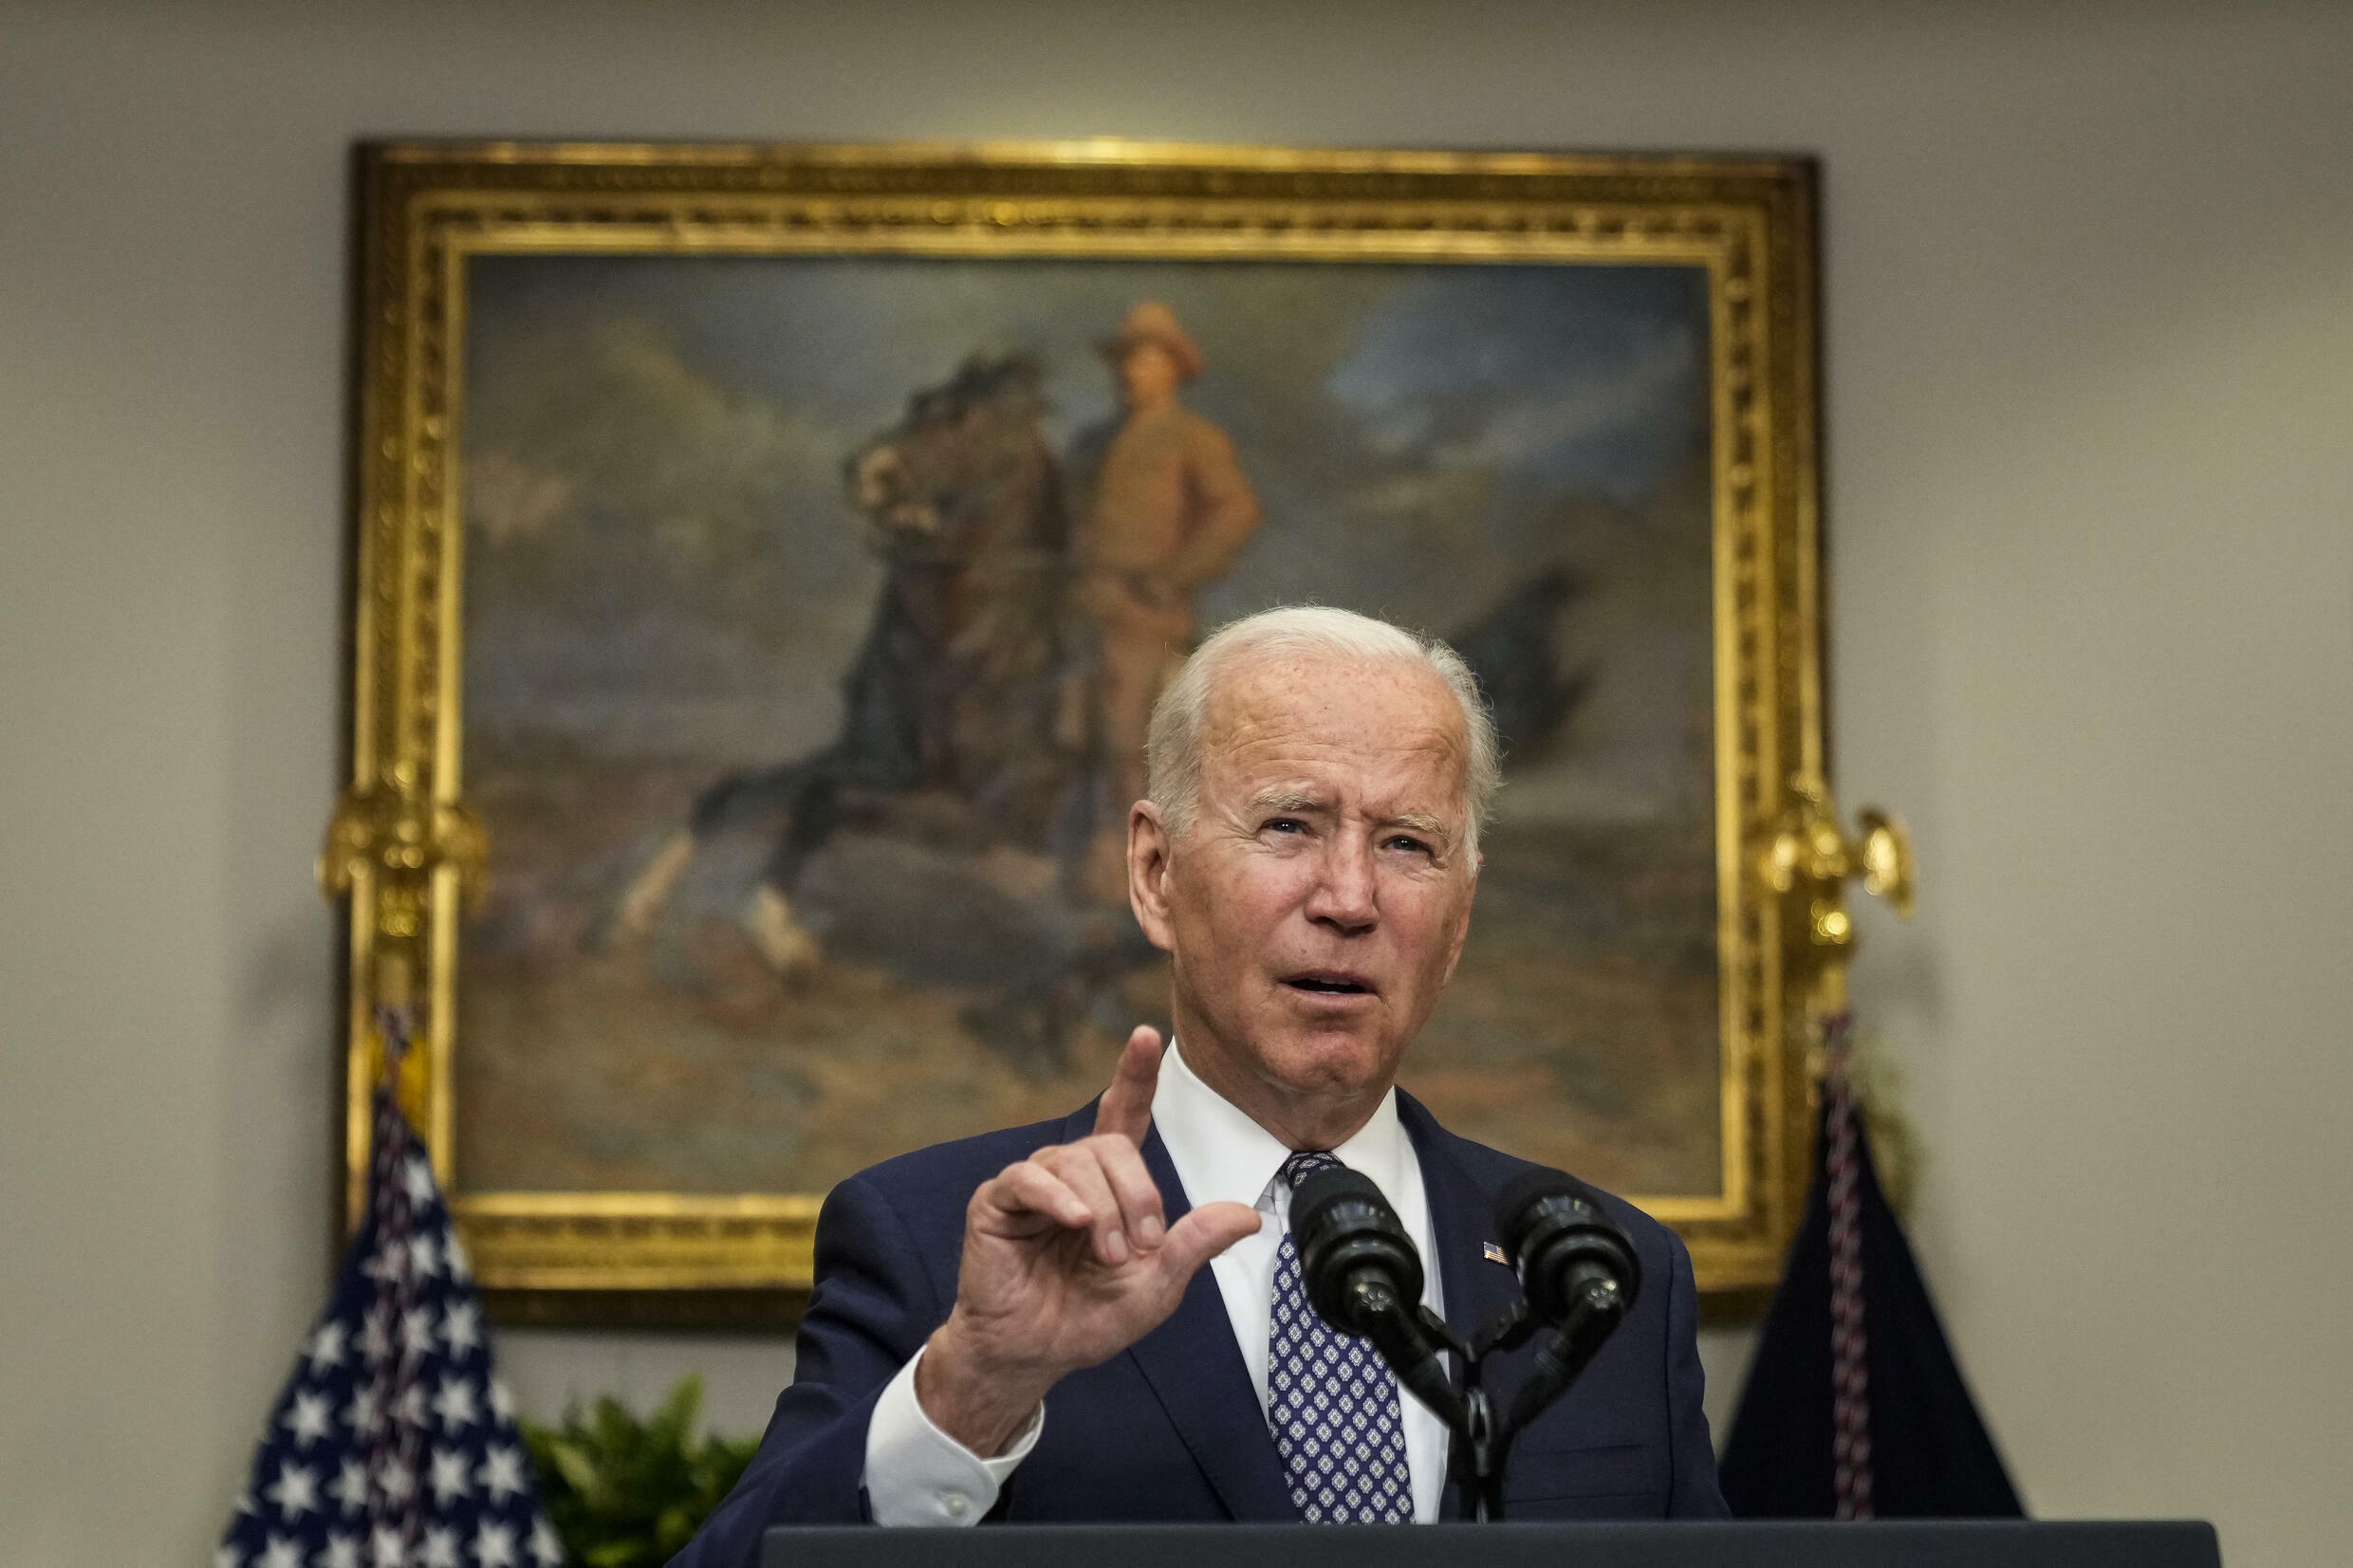 President Joe Biden is sticking to his August 31 deadline for the US withdrawal from Afghanistan